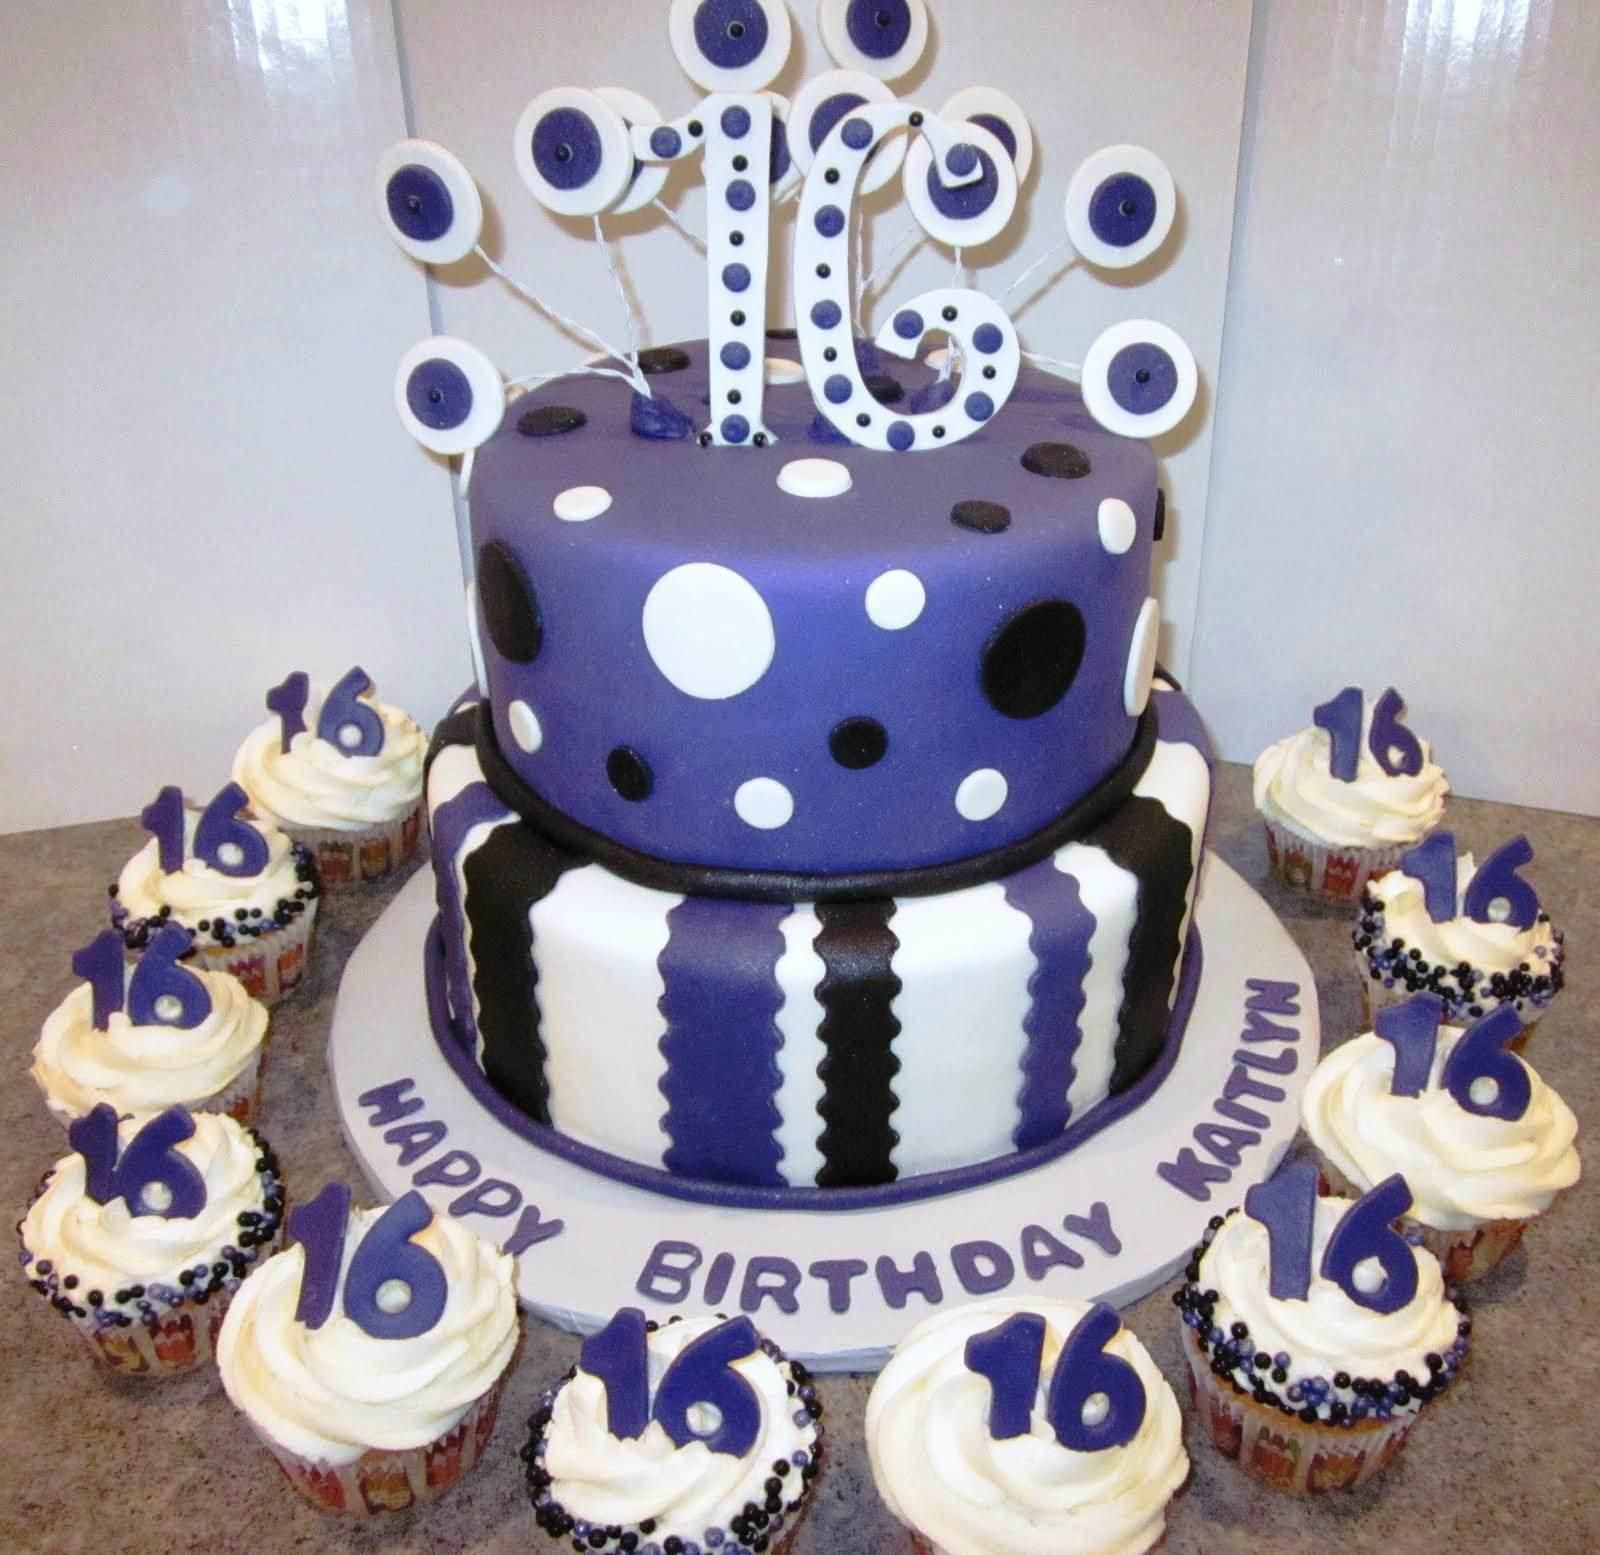 16thBirthdayCakeToppersjpg 16001555 Boys 16th birthday